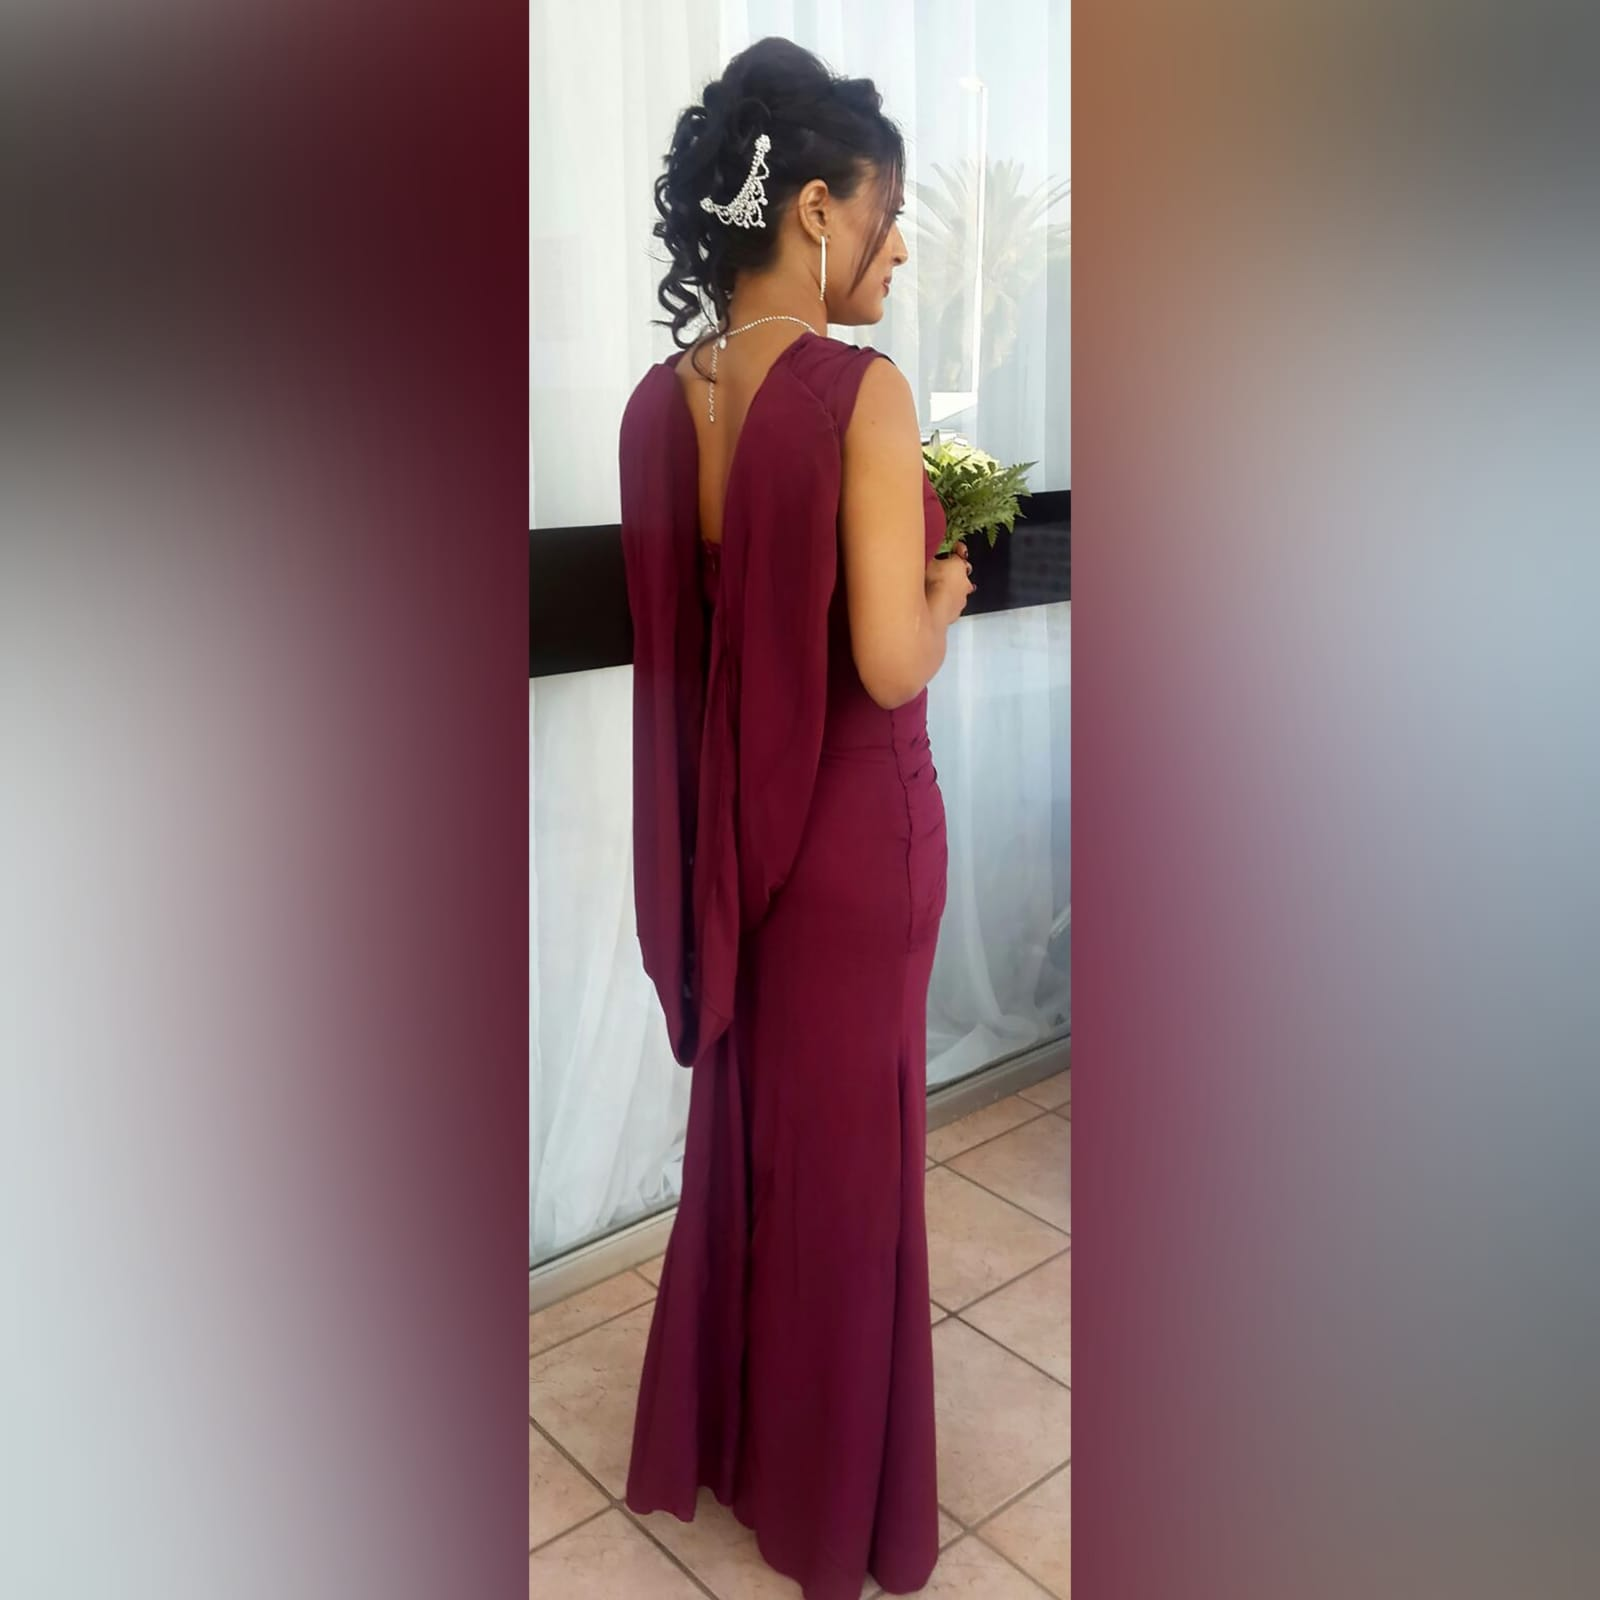 Soft mermaid maroon maid of honour dress 3 soft mermaid, maroon, maid of honour dress. With an open back. V neckline. With gathered shoulder and pleated tummy panel effect. With a detachable shoulder piece. Added silver detailing.